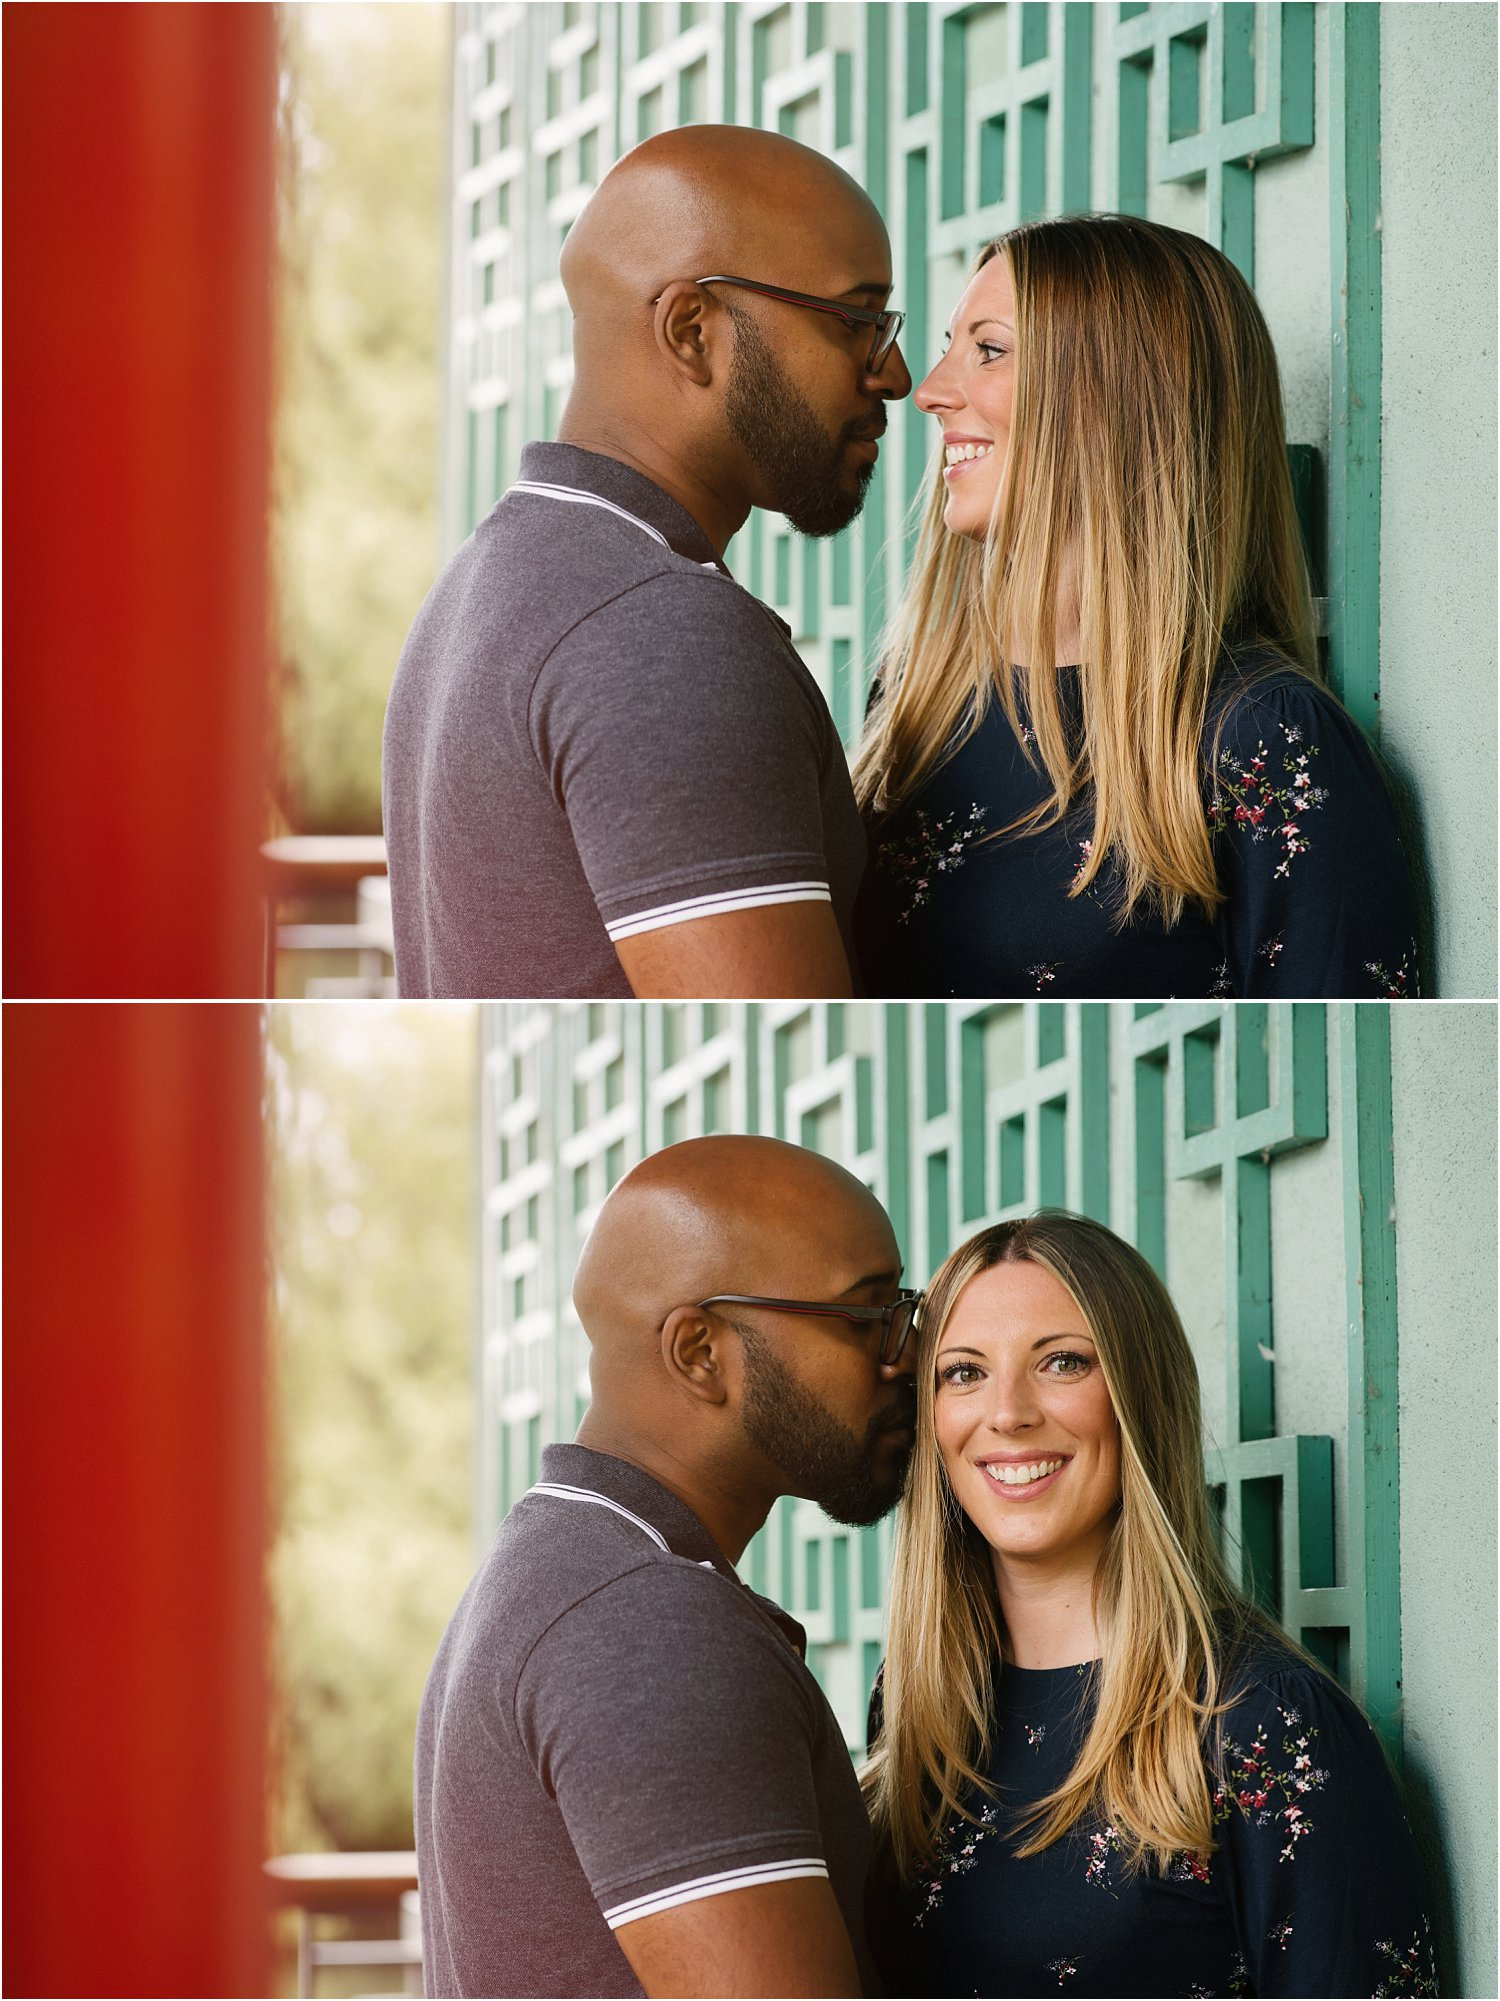 victoria-park-engagement-photoshoot-lily-sawyer-photo